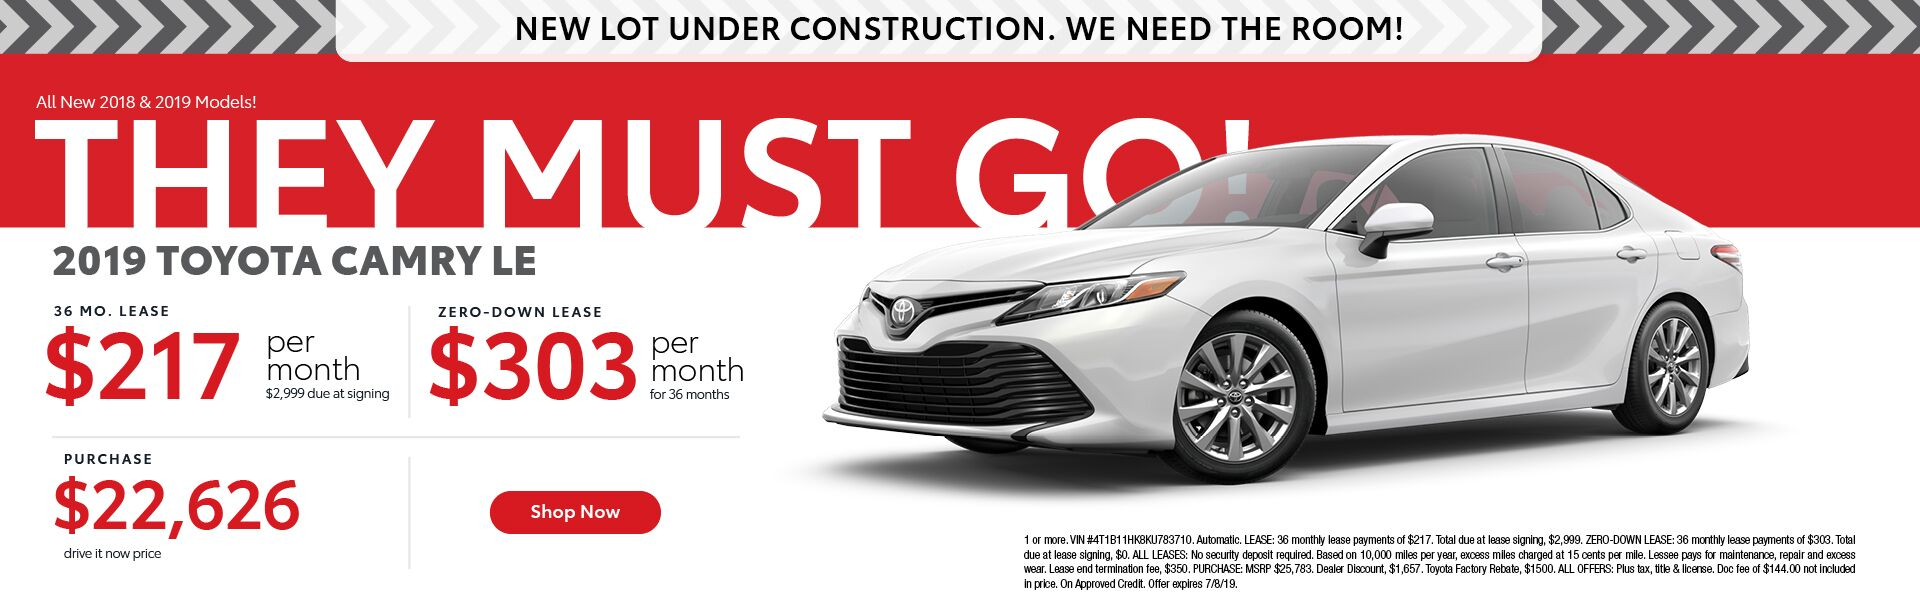 2019 Toyota Camry LE $217 per month for 36 months with $2,999 due at signing - zero down lease $303 per month for 36 months - purchase price $22,626